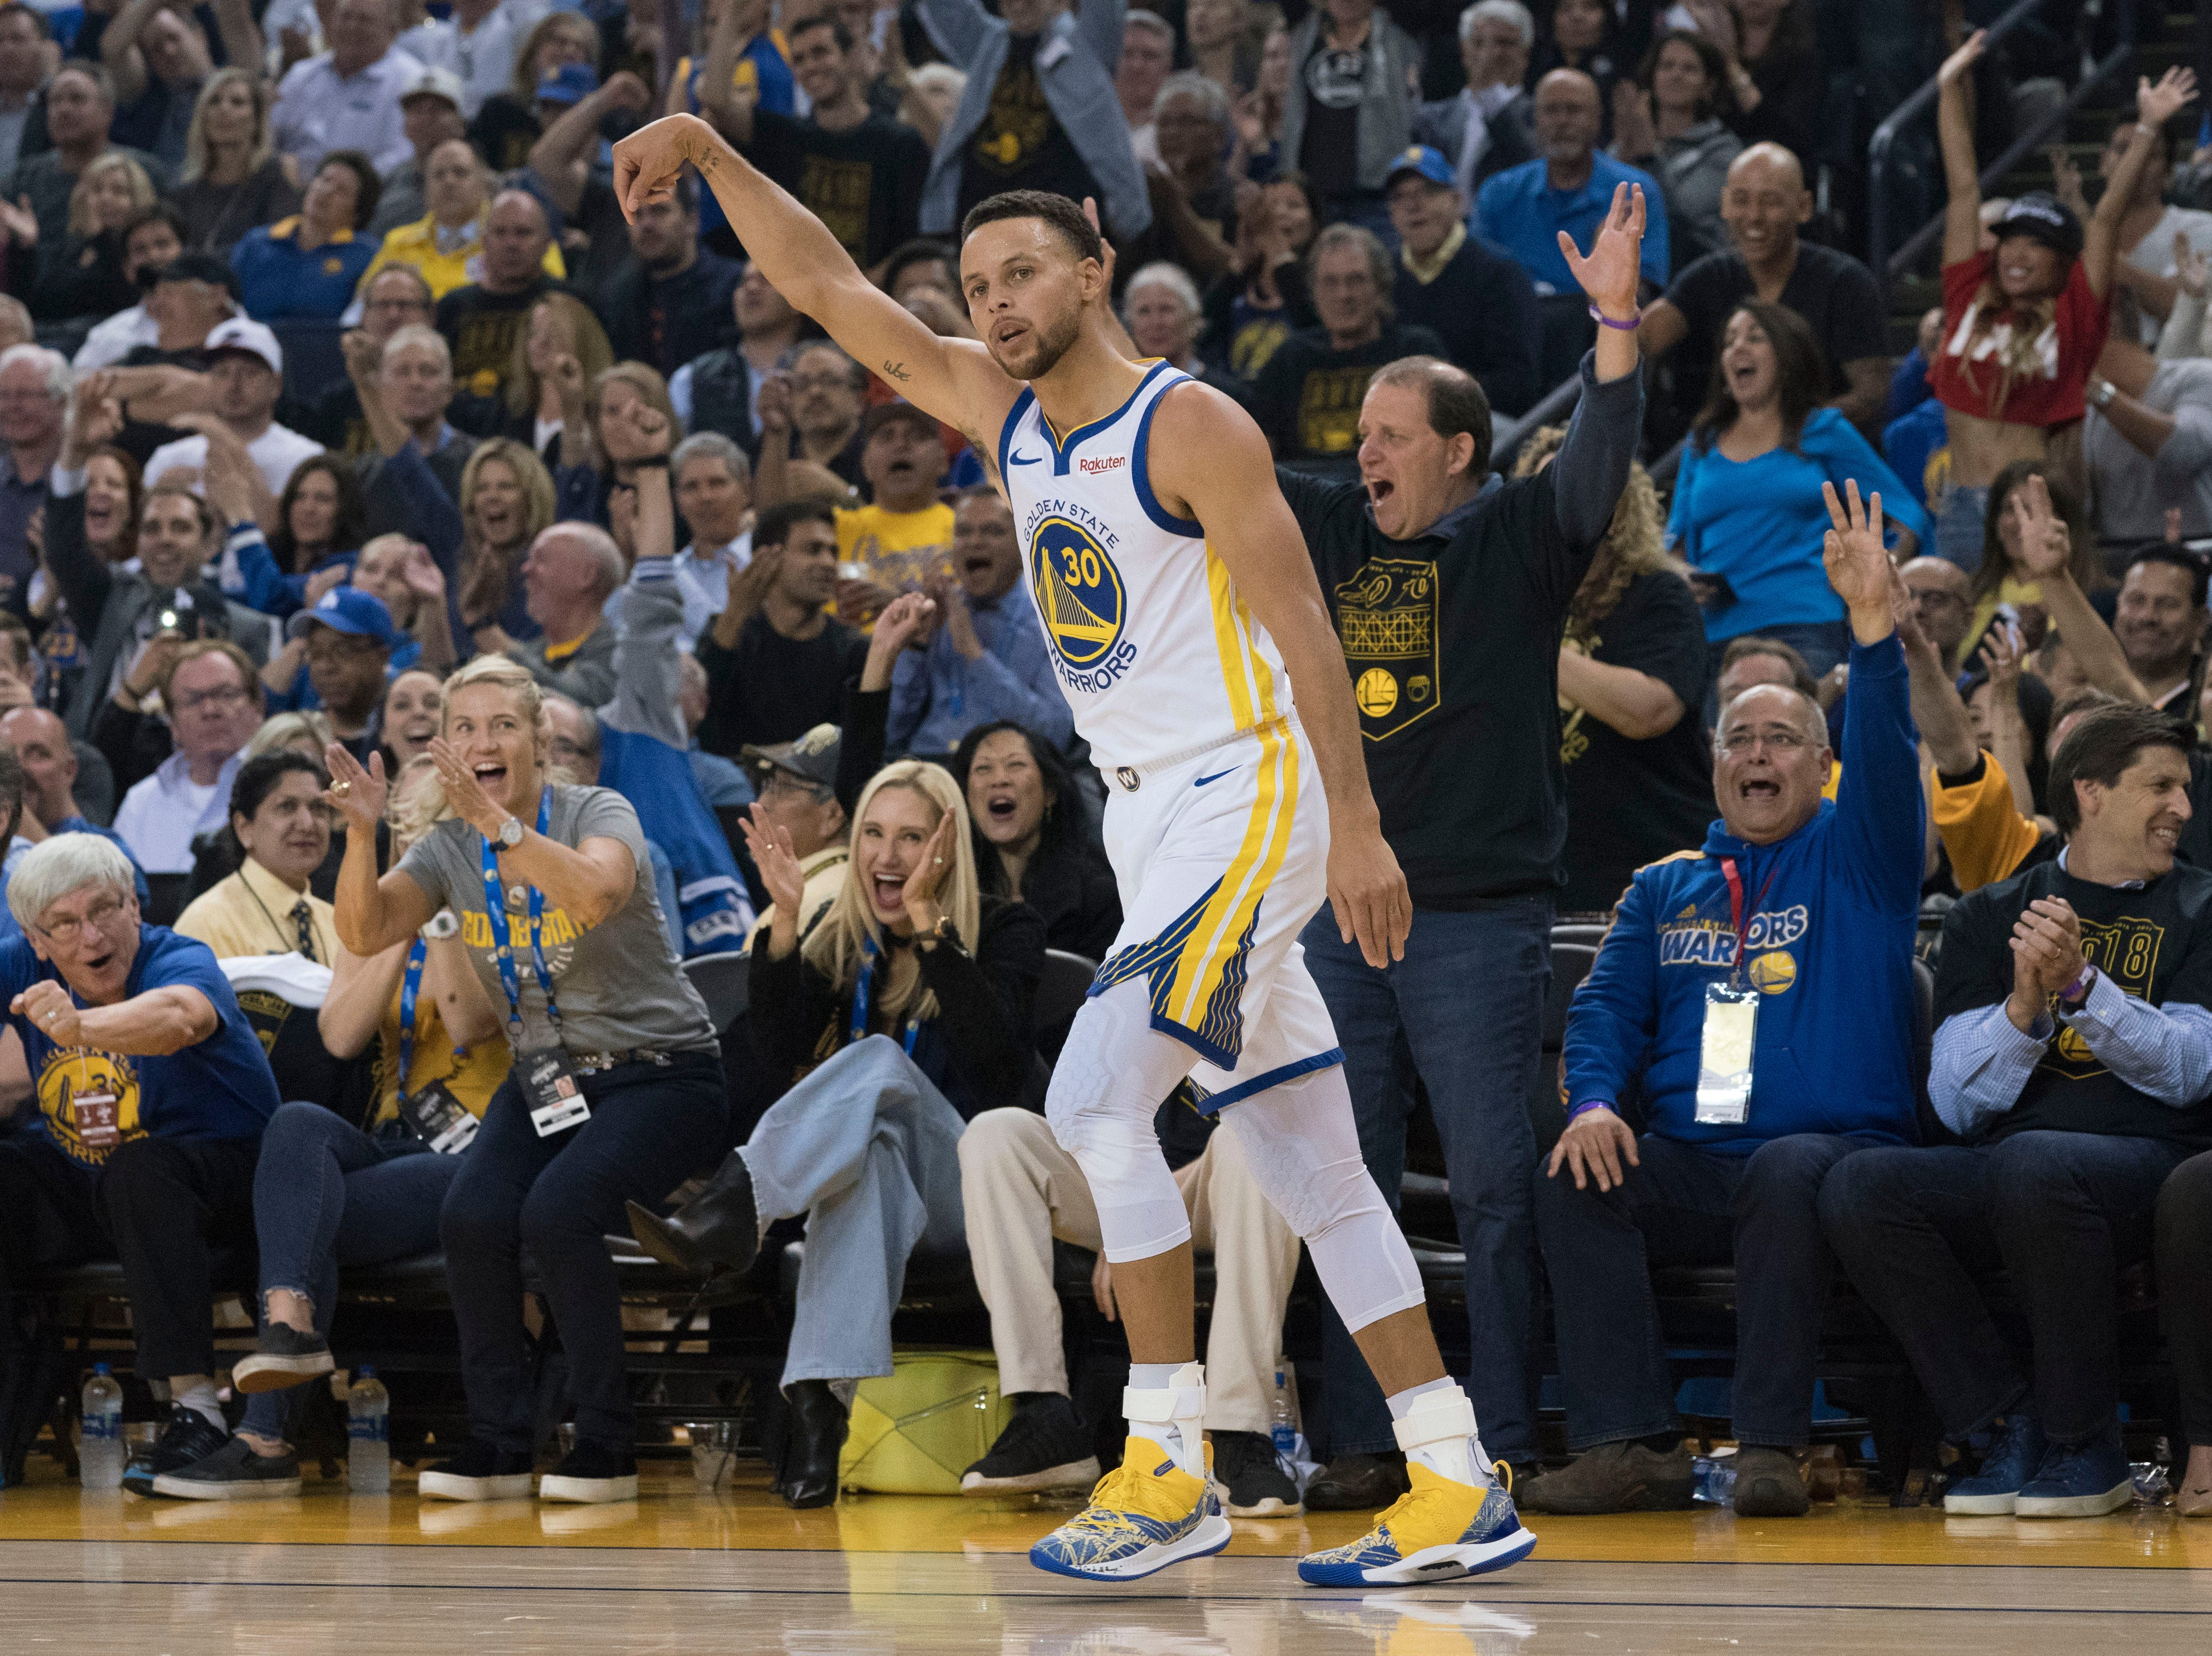 Oct. 16: Golden State Warriors guard Stephen Curry celebrates after making a three-point basket against the Oklahoma City Thunder.